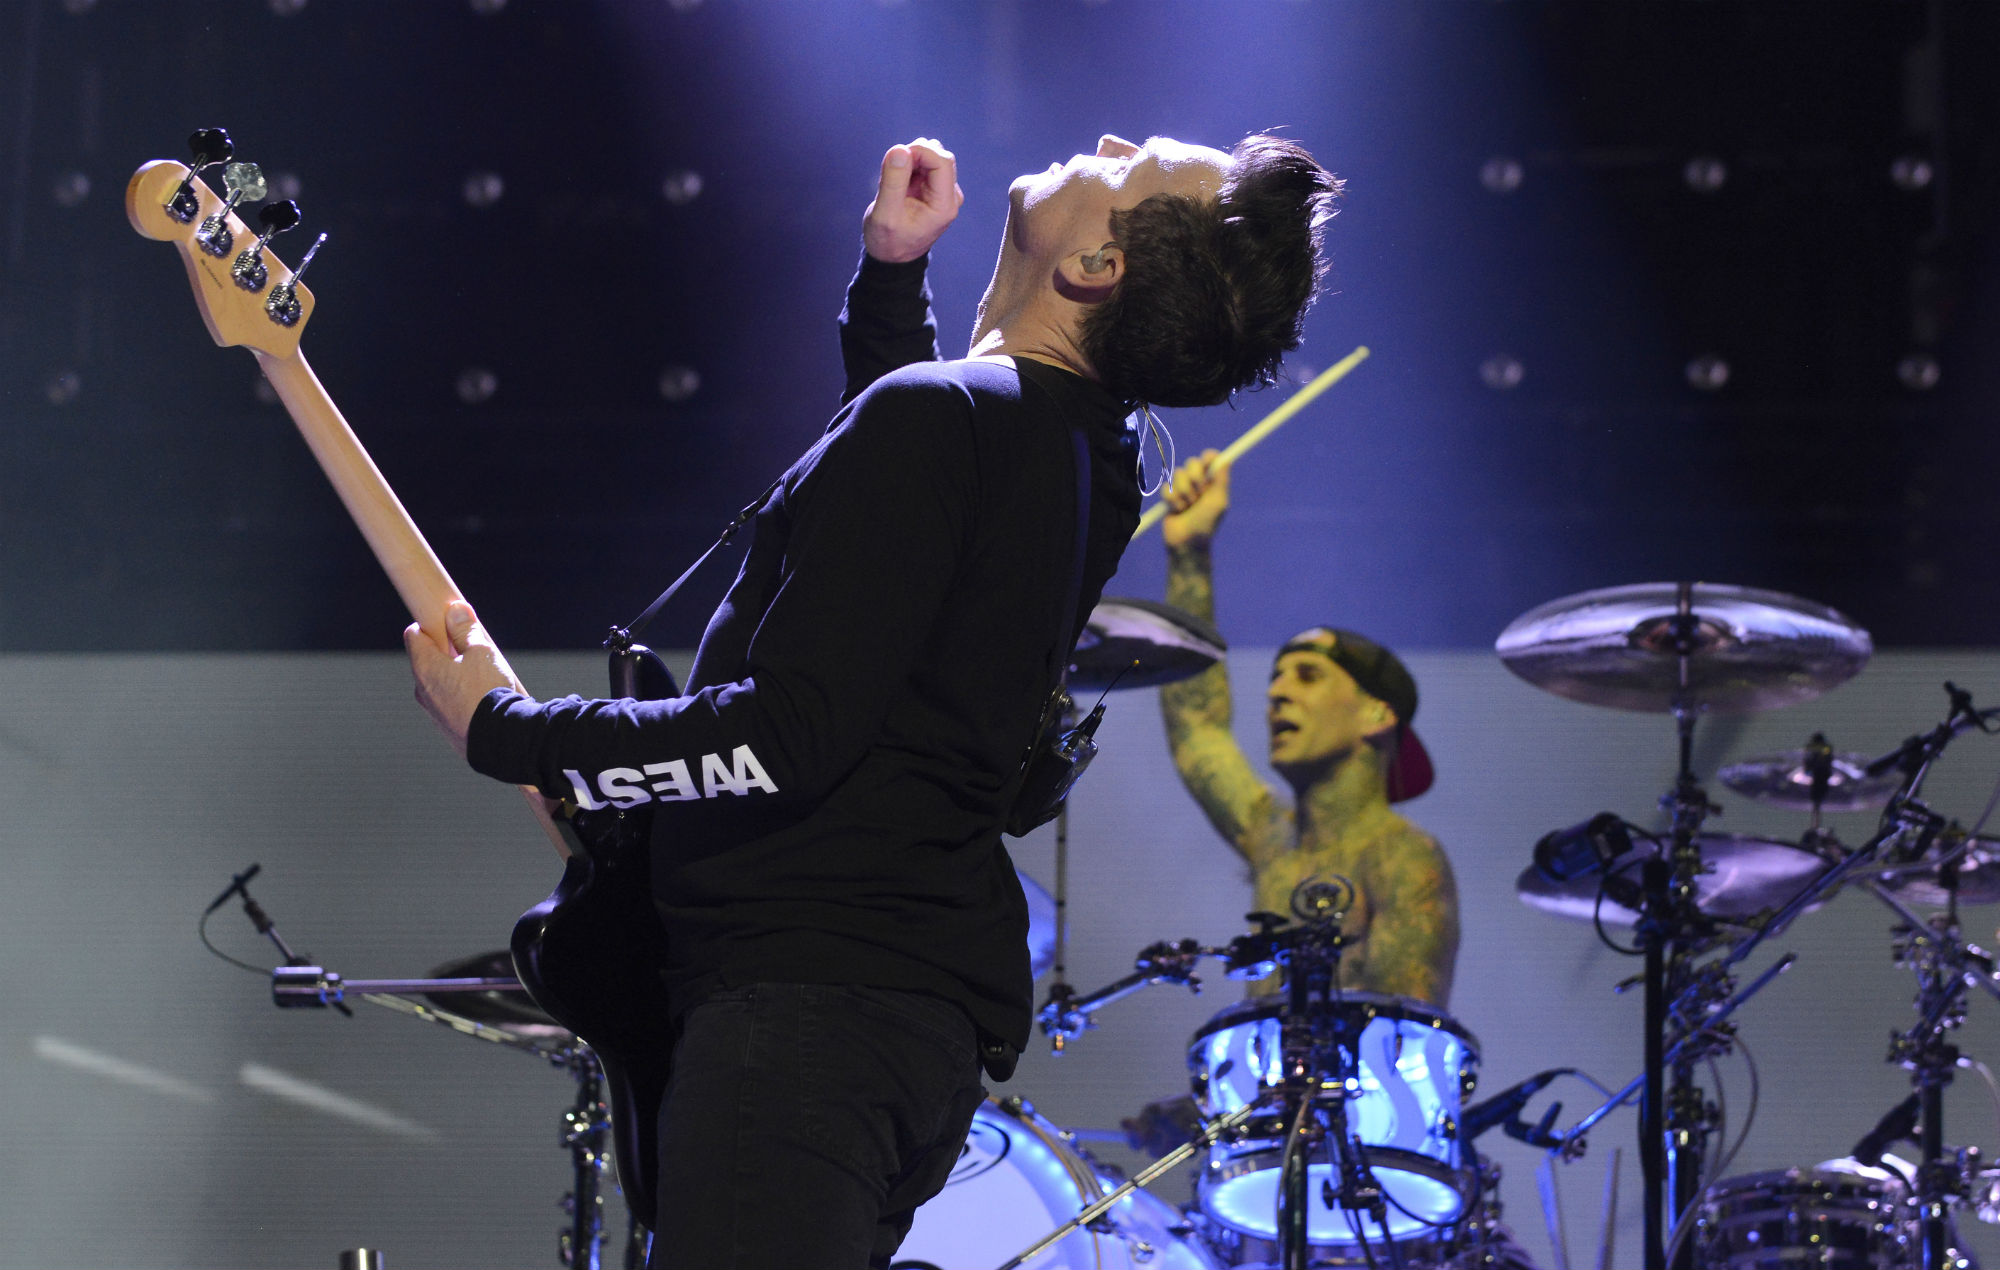 Mark Hoppus (L) and Travis Barker of Blink 182 perform during Lollapalooza 2017 at Grant Park on August 4, 2017 in Chicago, Illinois